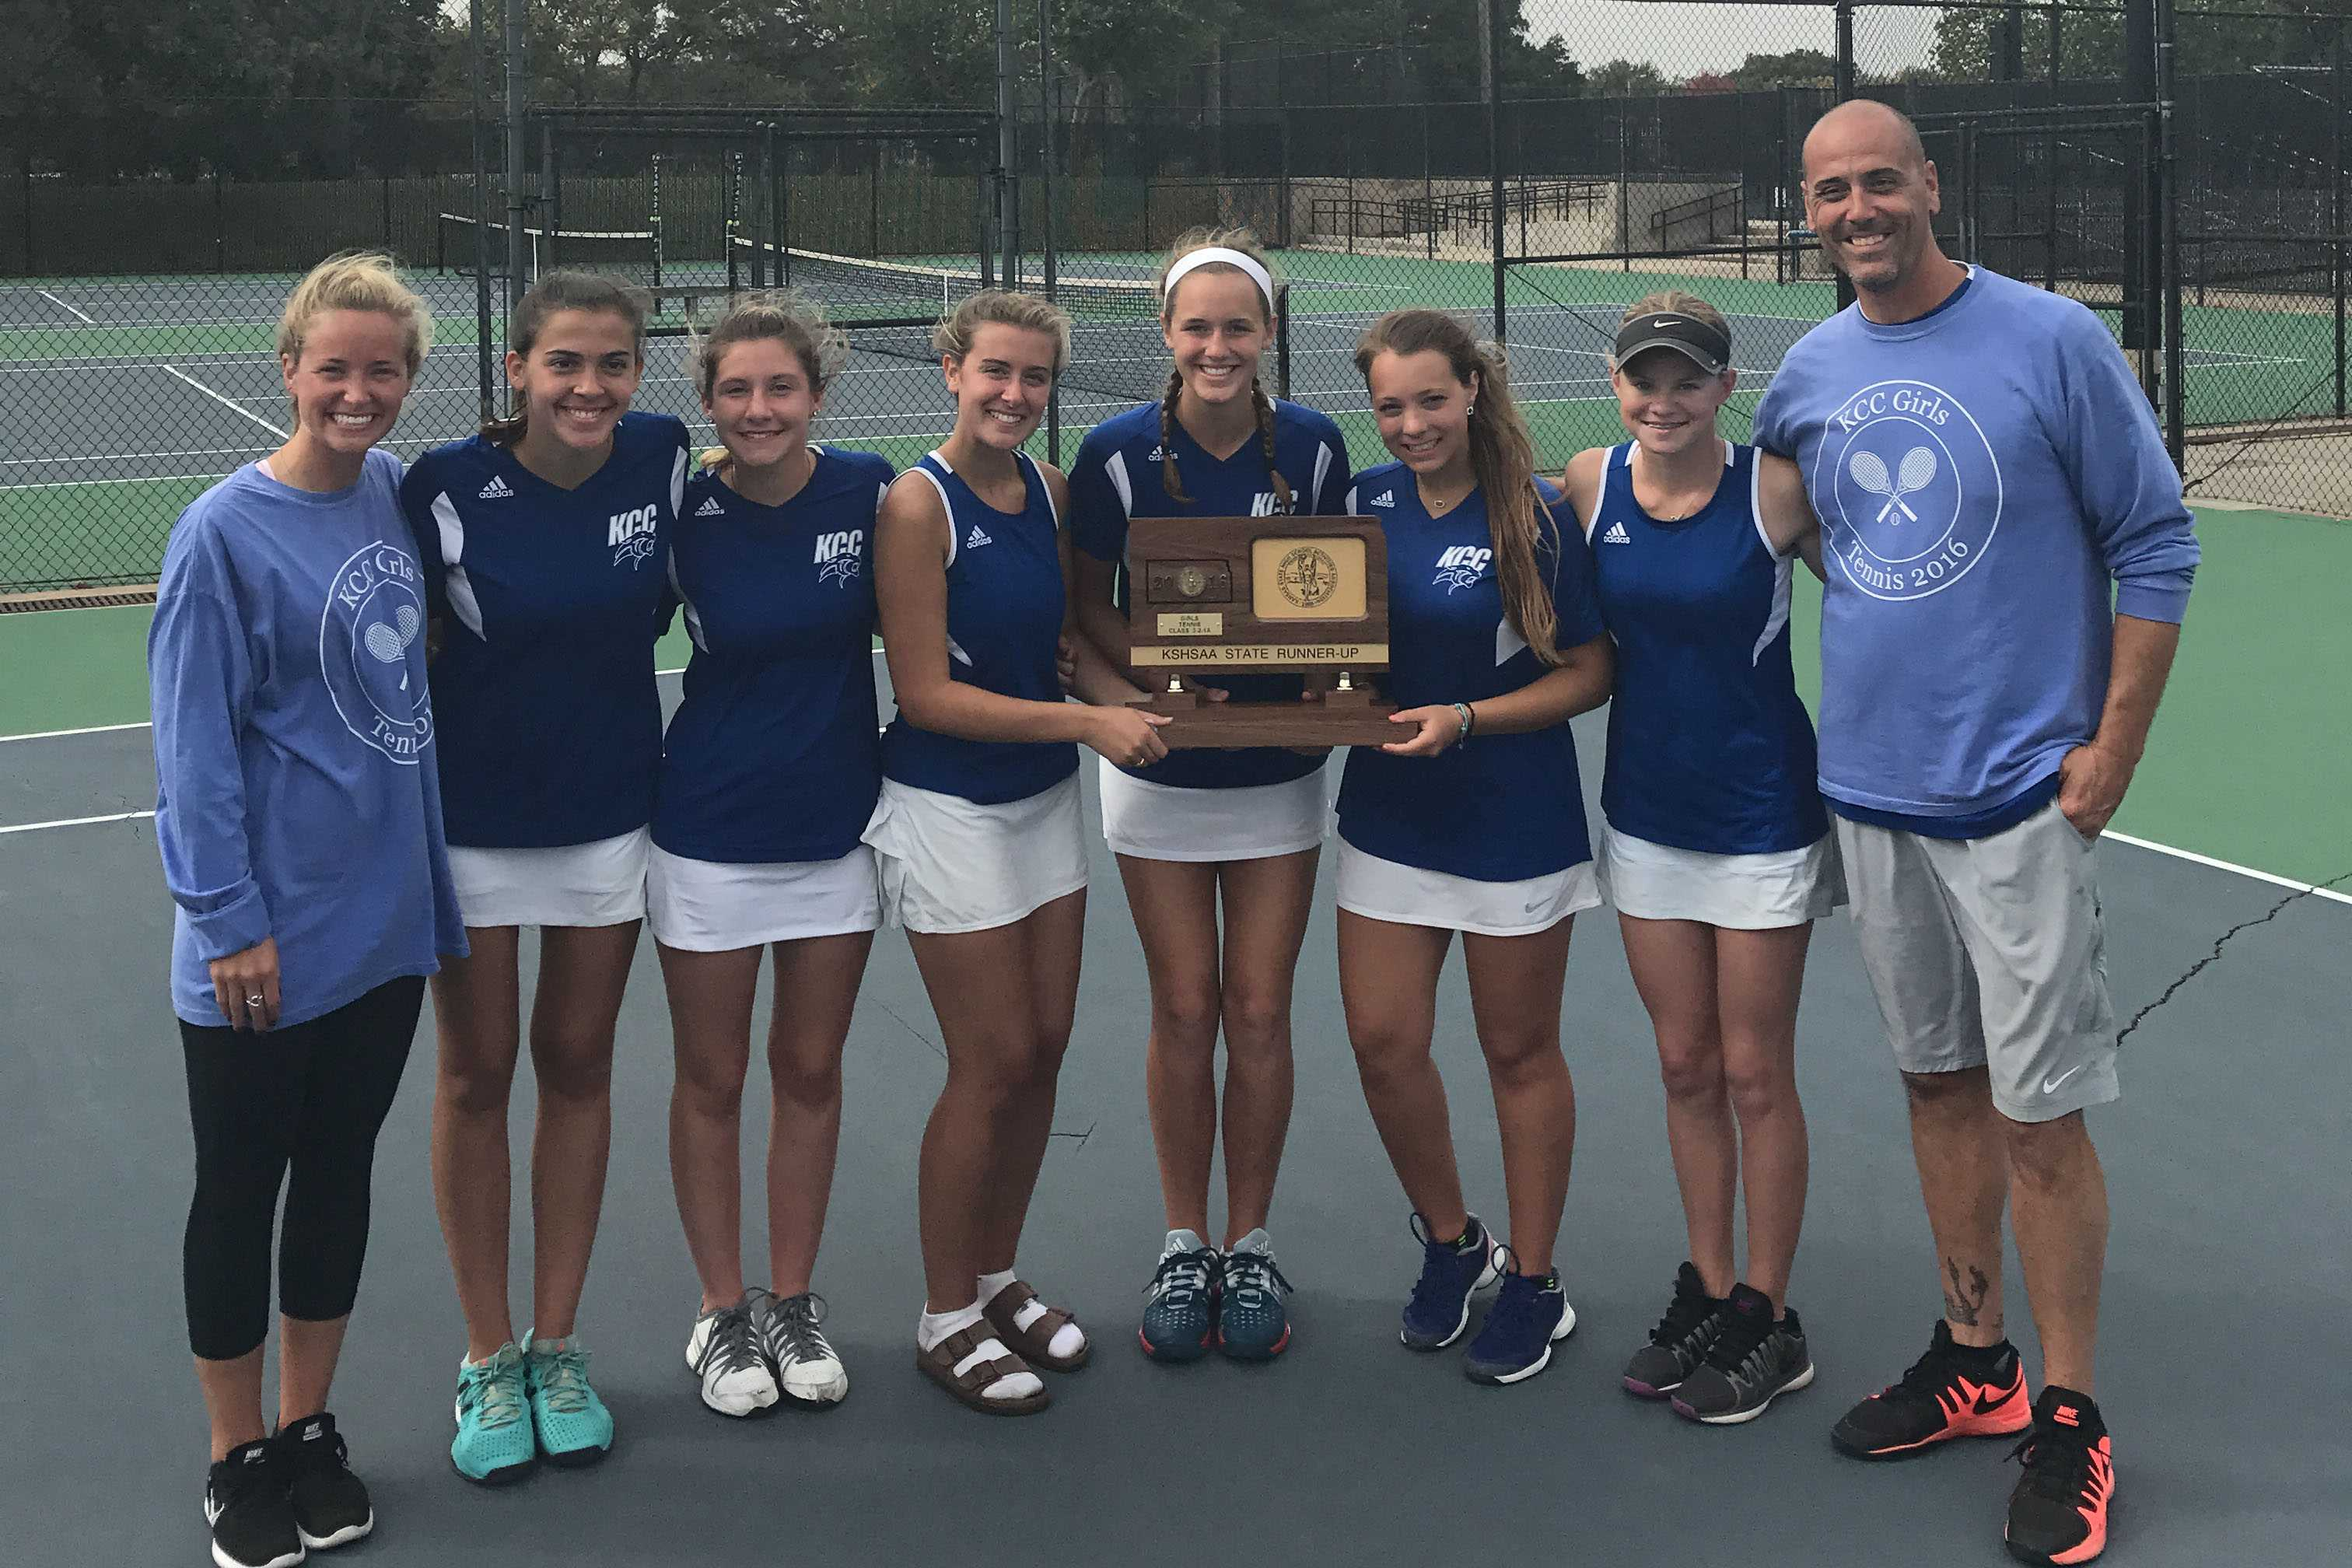 The tennis team holds their second place state plaque.